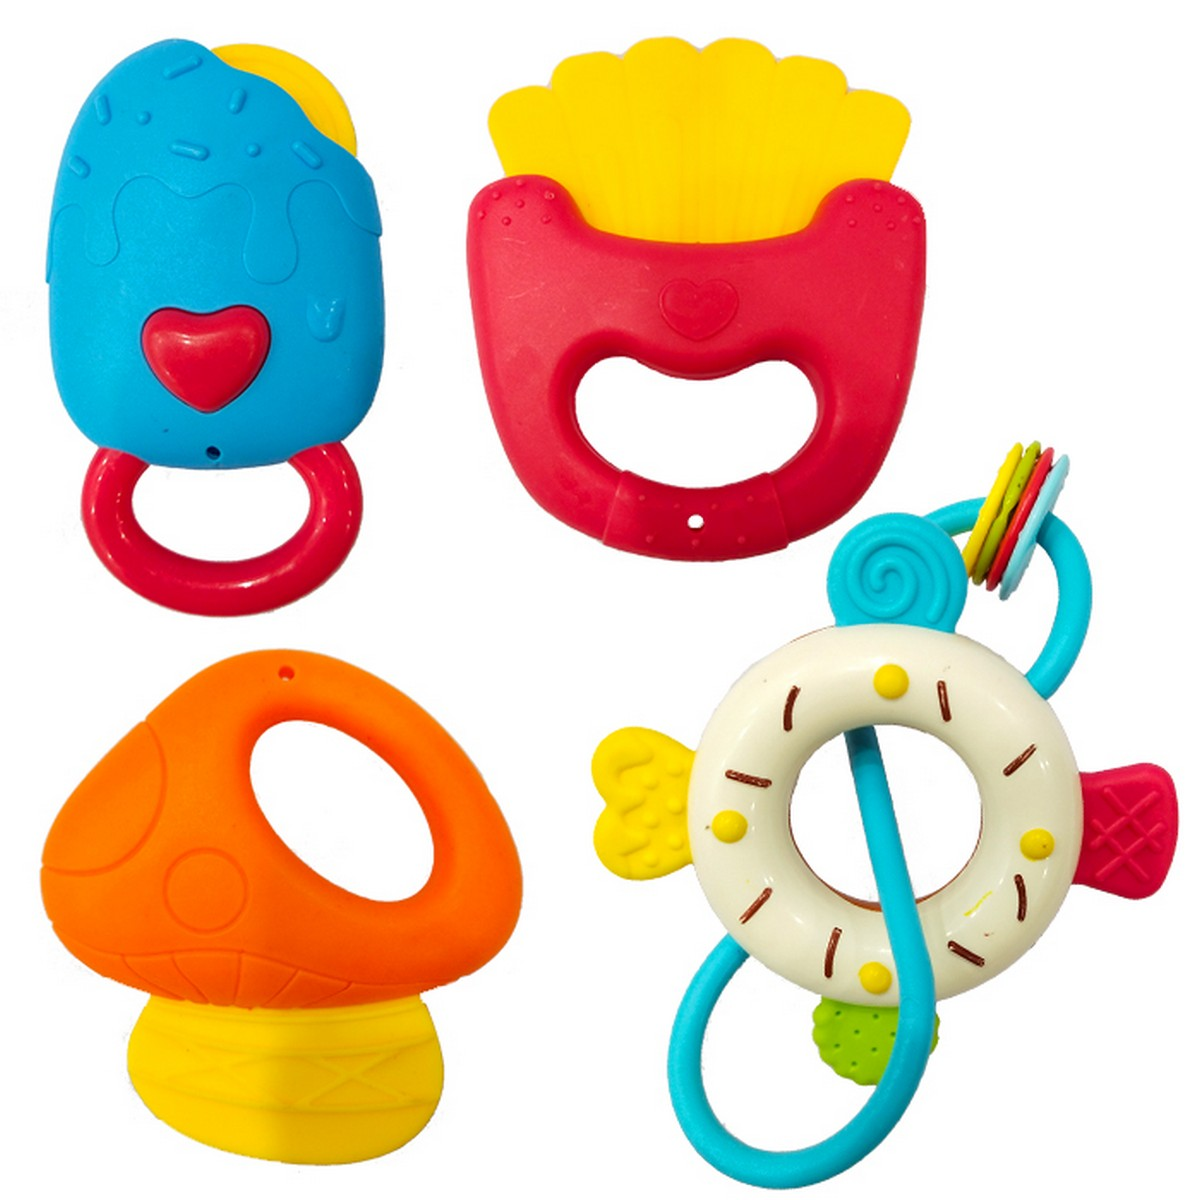 Pure Silicone & Plastic Baby Teather & Rattle Set - 4 PCS